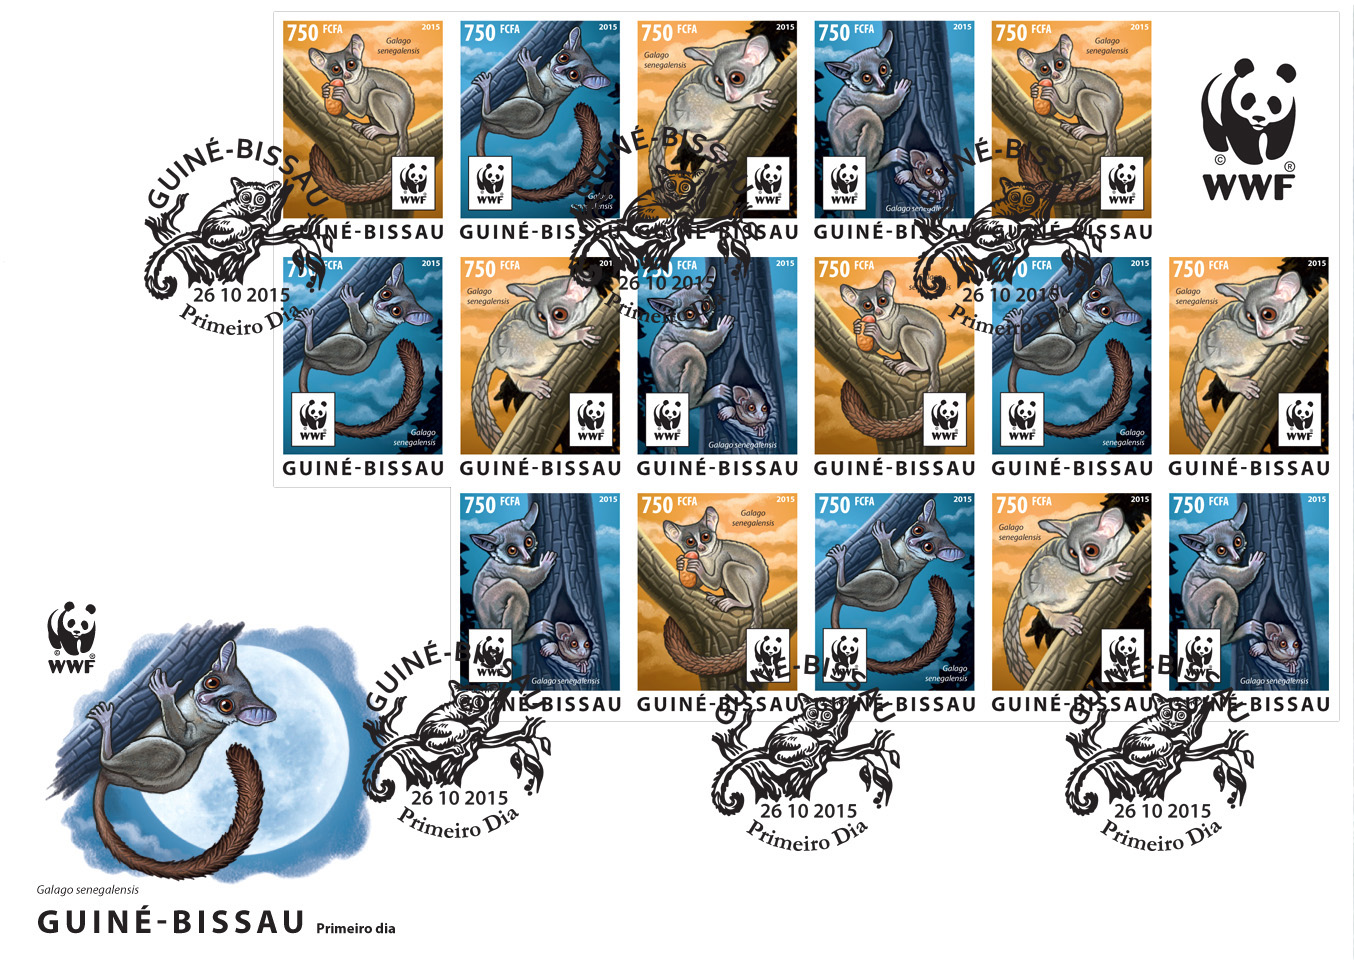 WWF – Galago (FDC imperf.) - Issue of Guinée-Bissau postage stamps